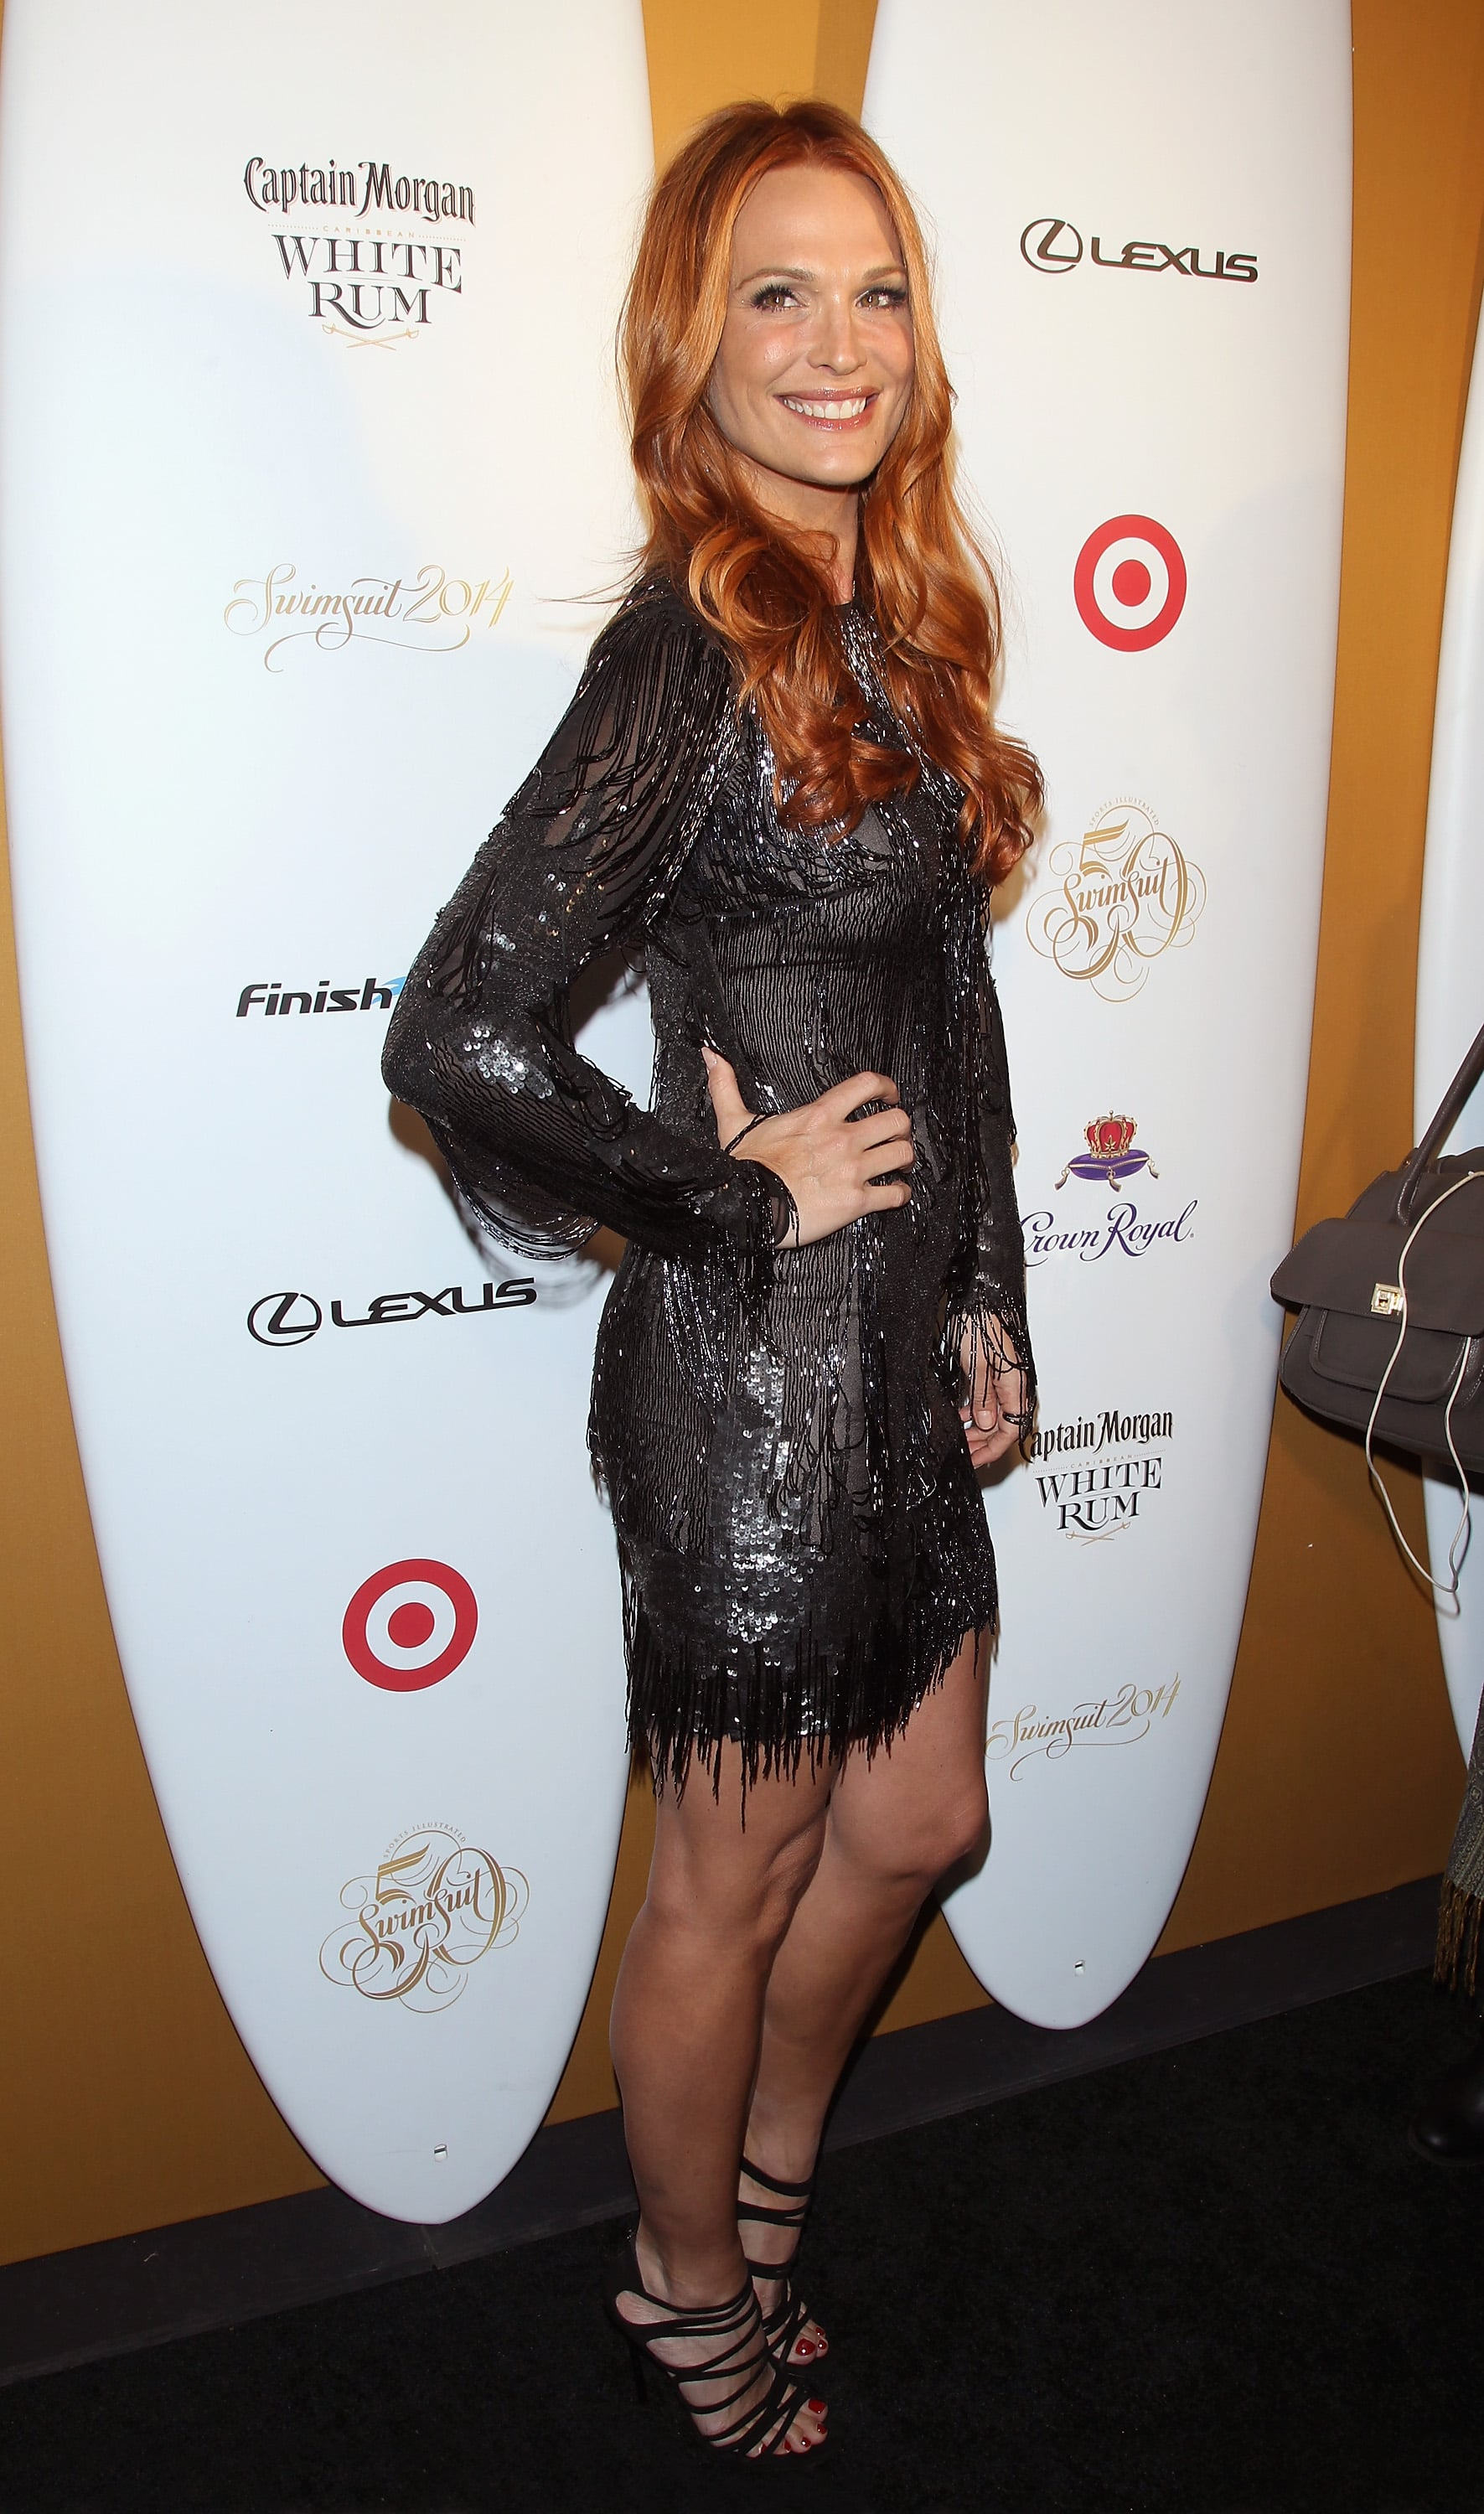 Molly Sims showed off her new red hair, which she told us that she based off of Amy Adams's color.